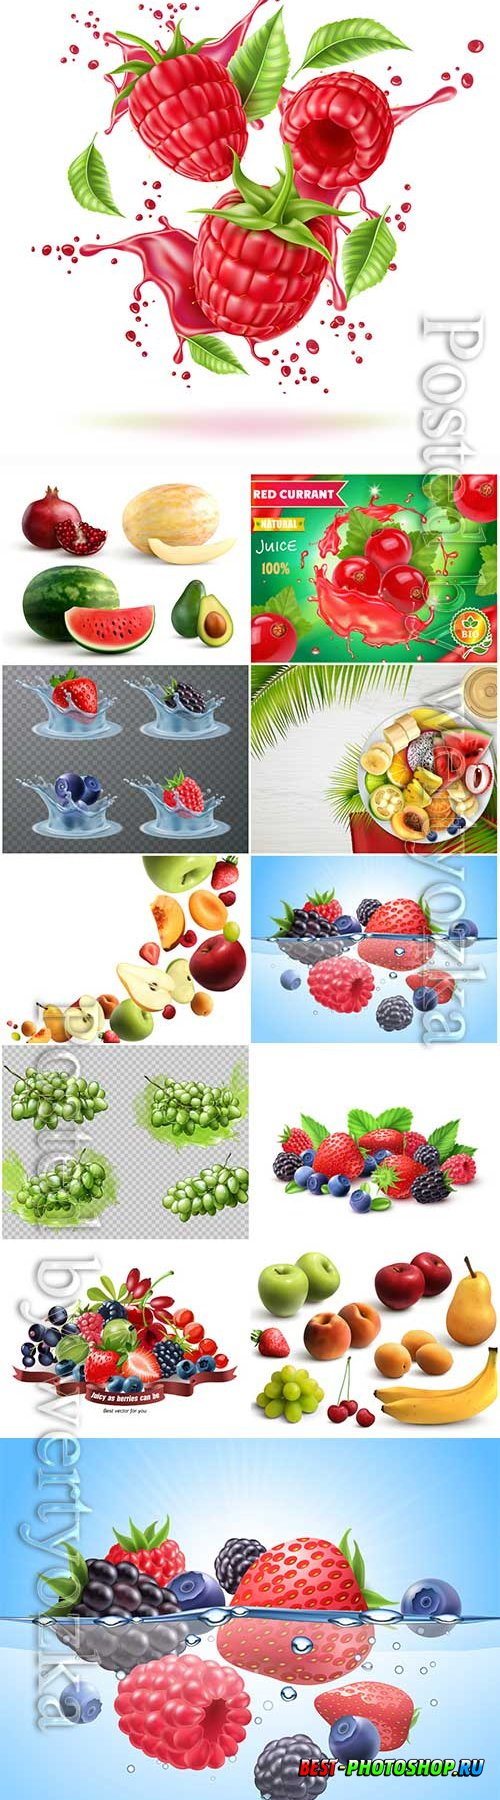 Mix of fresh berries and fruits isolated on white background